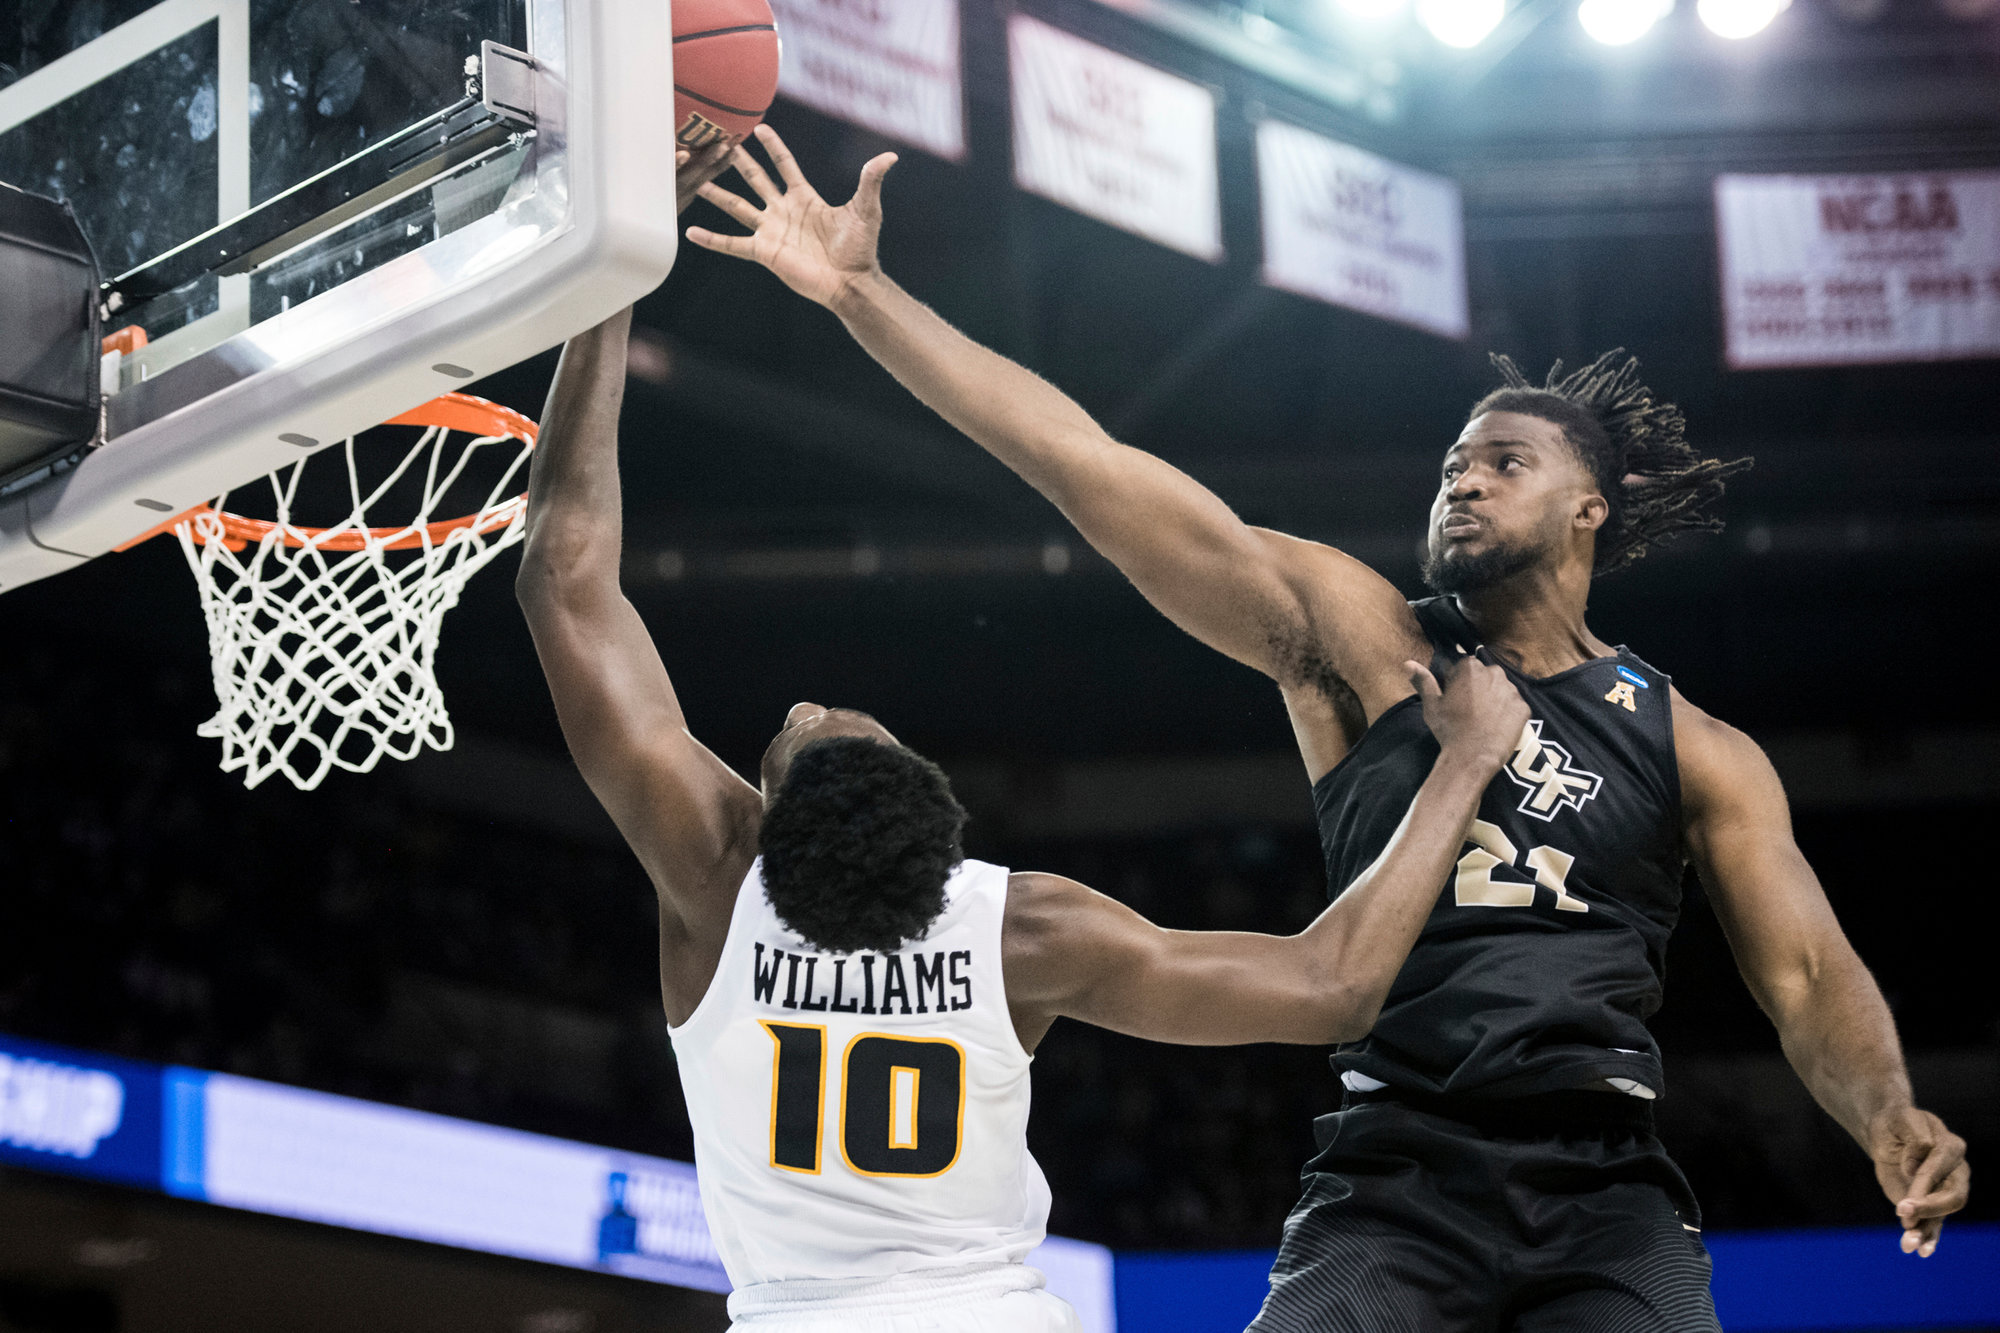 UCF's Fall 'won't allow' Zion to posterize him